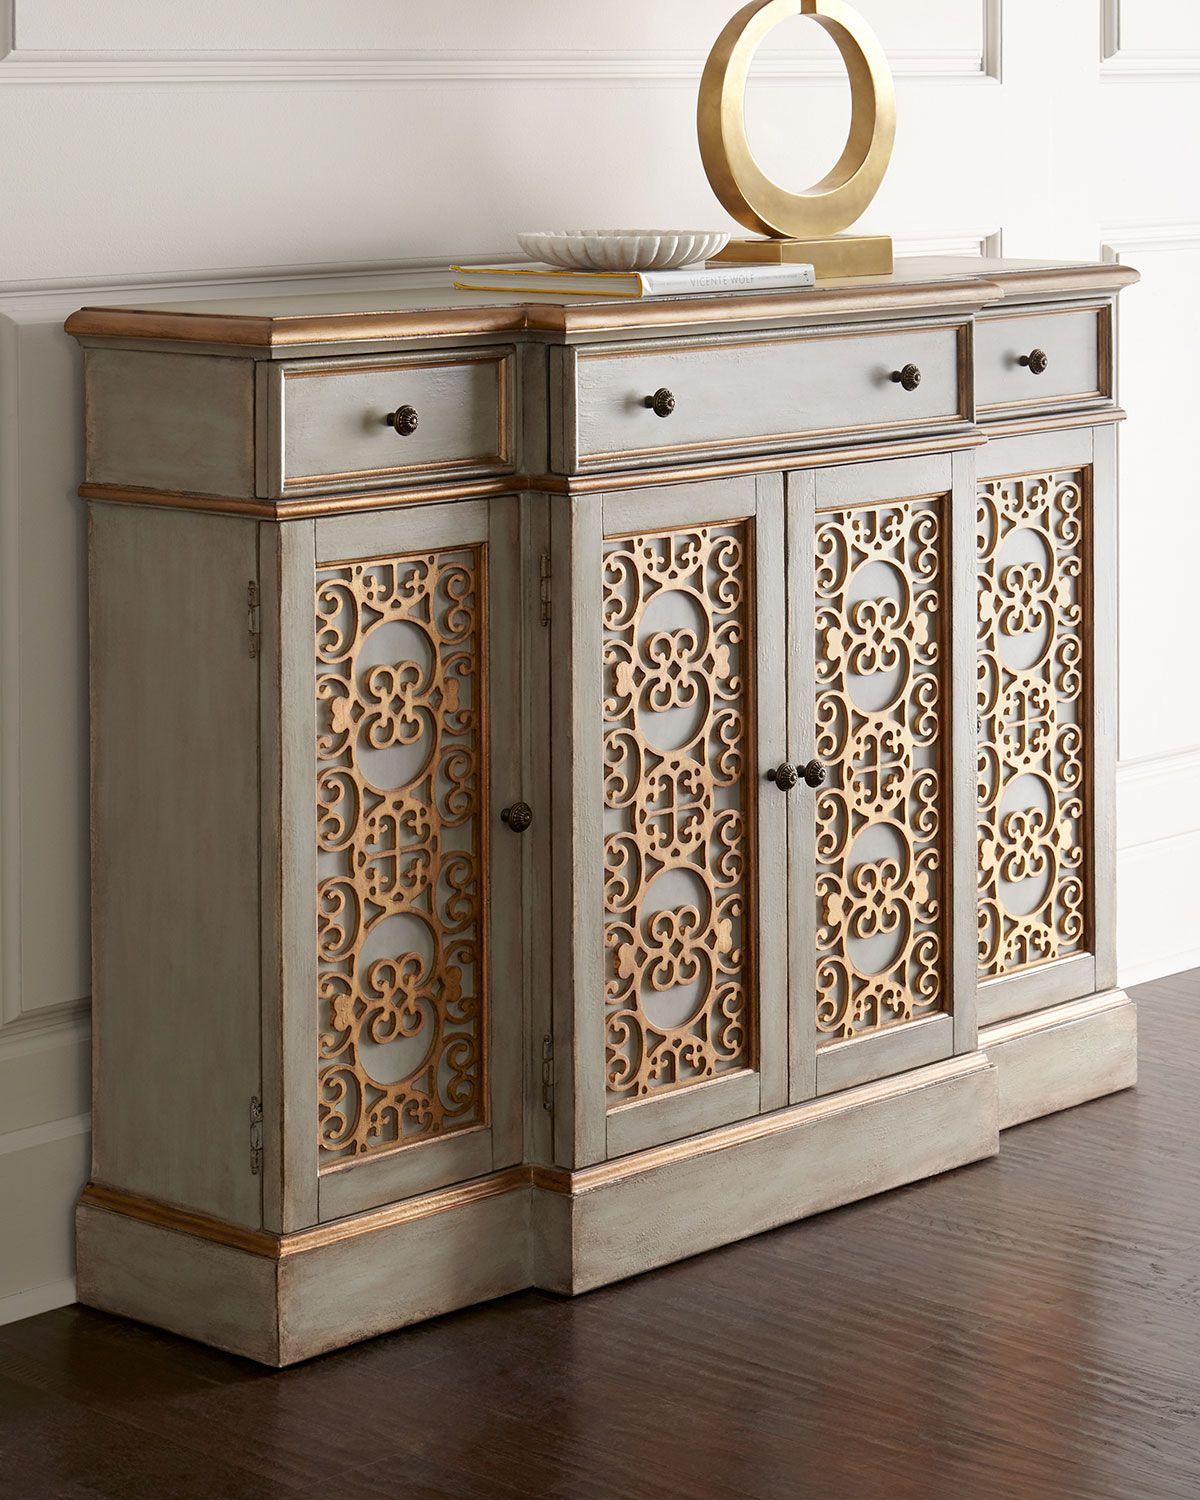 Sideboard Features Intricate Doors Adorned With Scrolled Intended For Stillwater Sideboards (View 23 of 30)